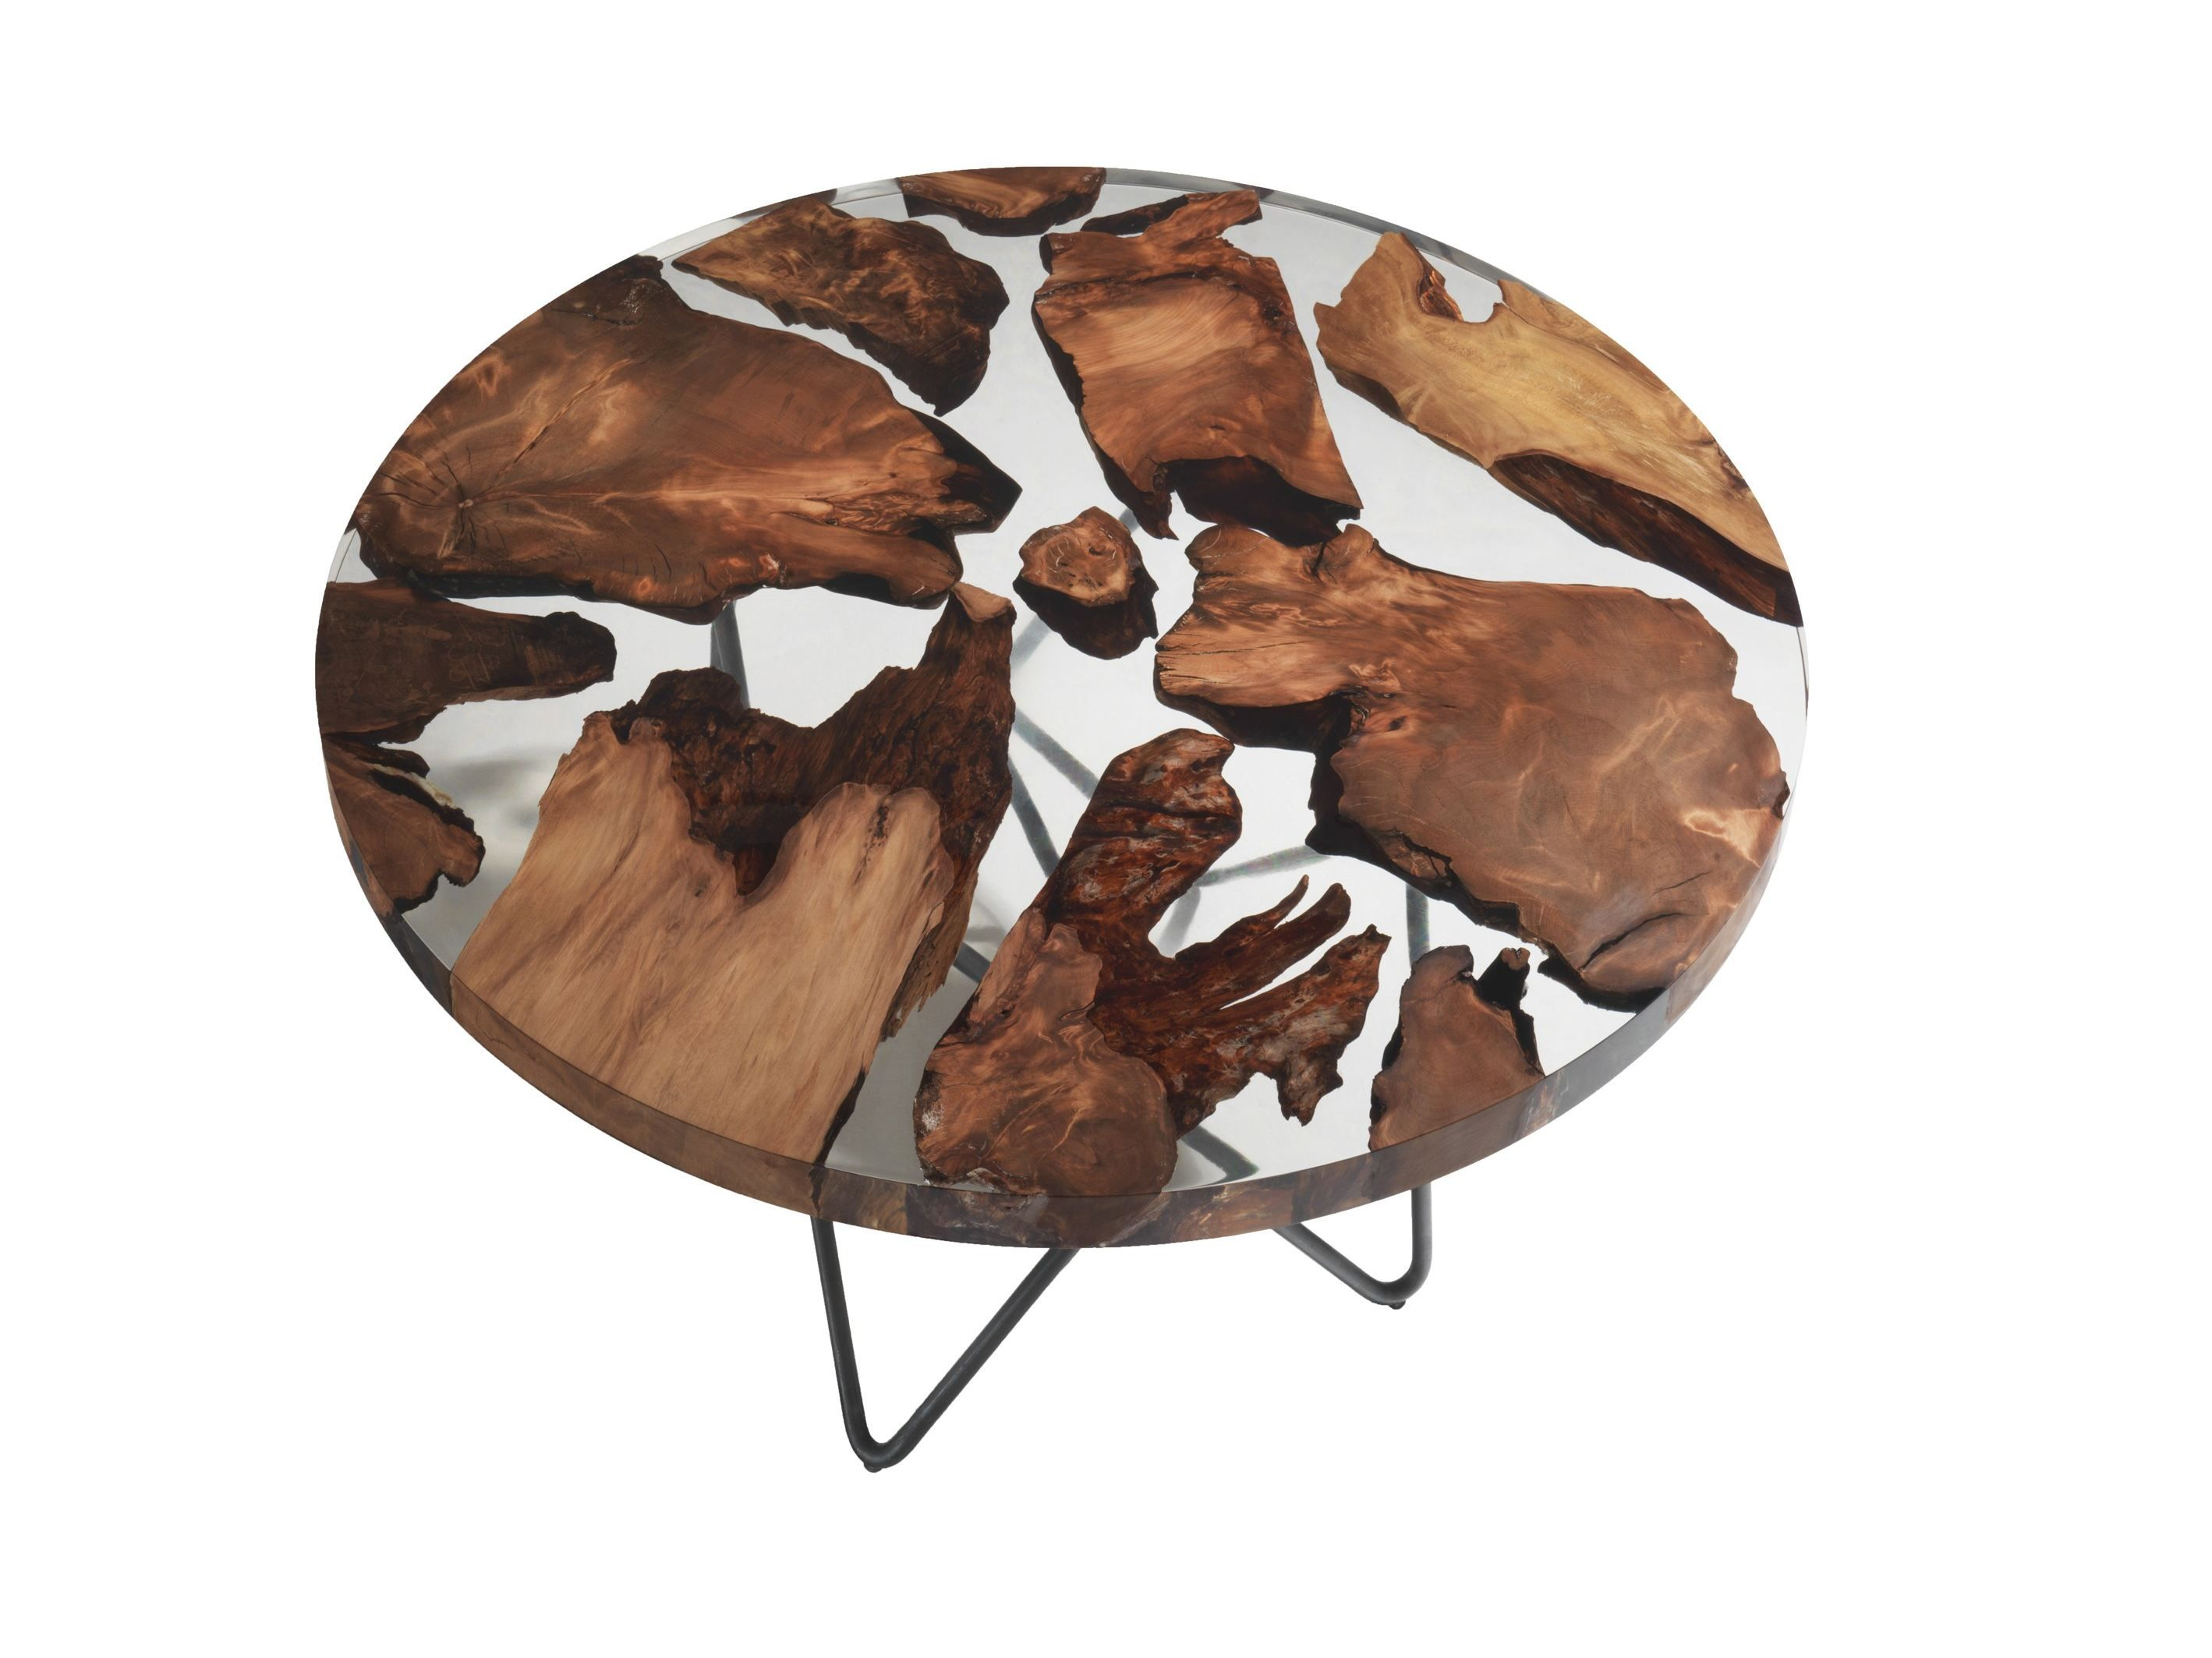 Round Kauri Wood And Resin Table Earth By Riva 1920 Design Renzo Piano Matteo Piano Wood Furniture Design Wood Resin Table Resin Table